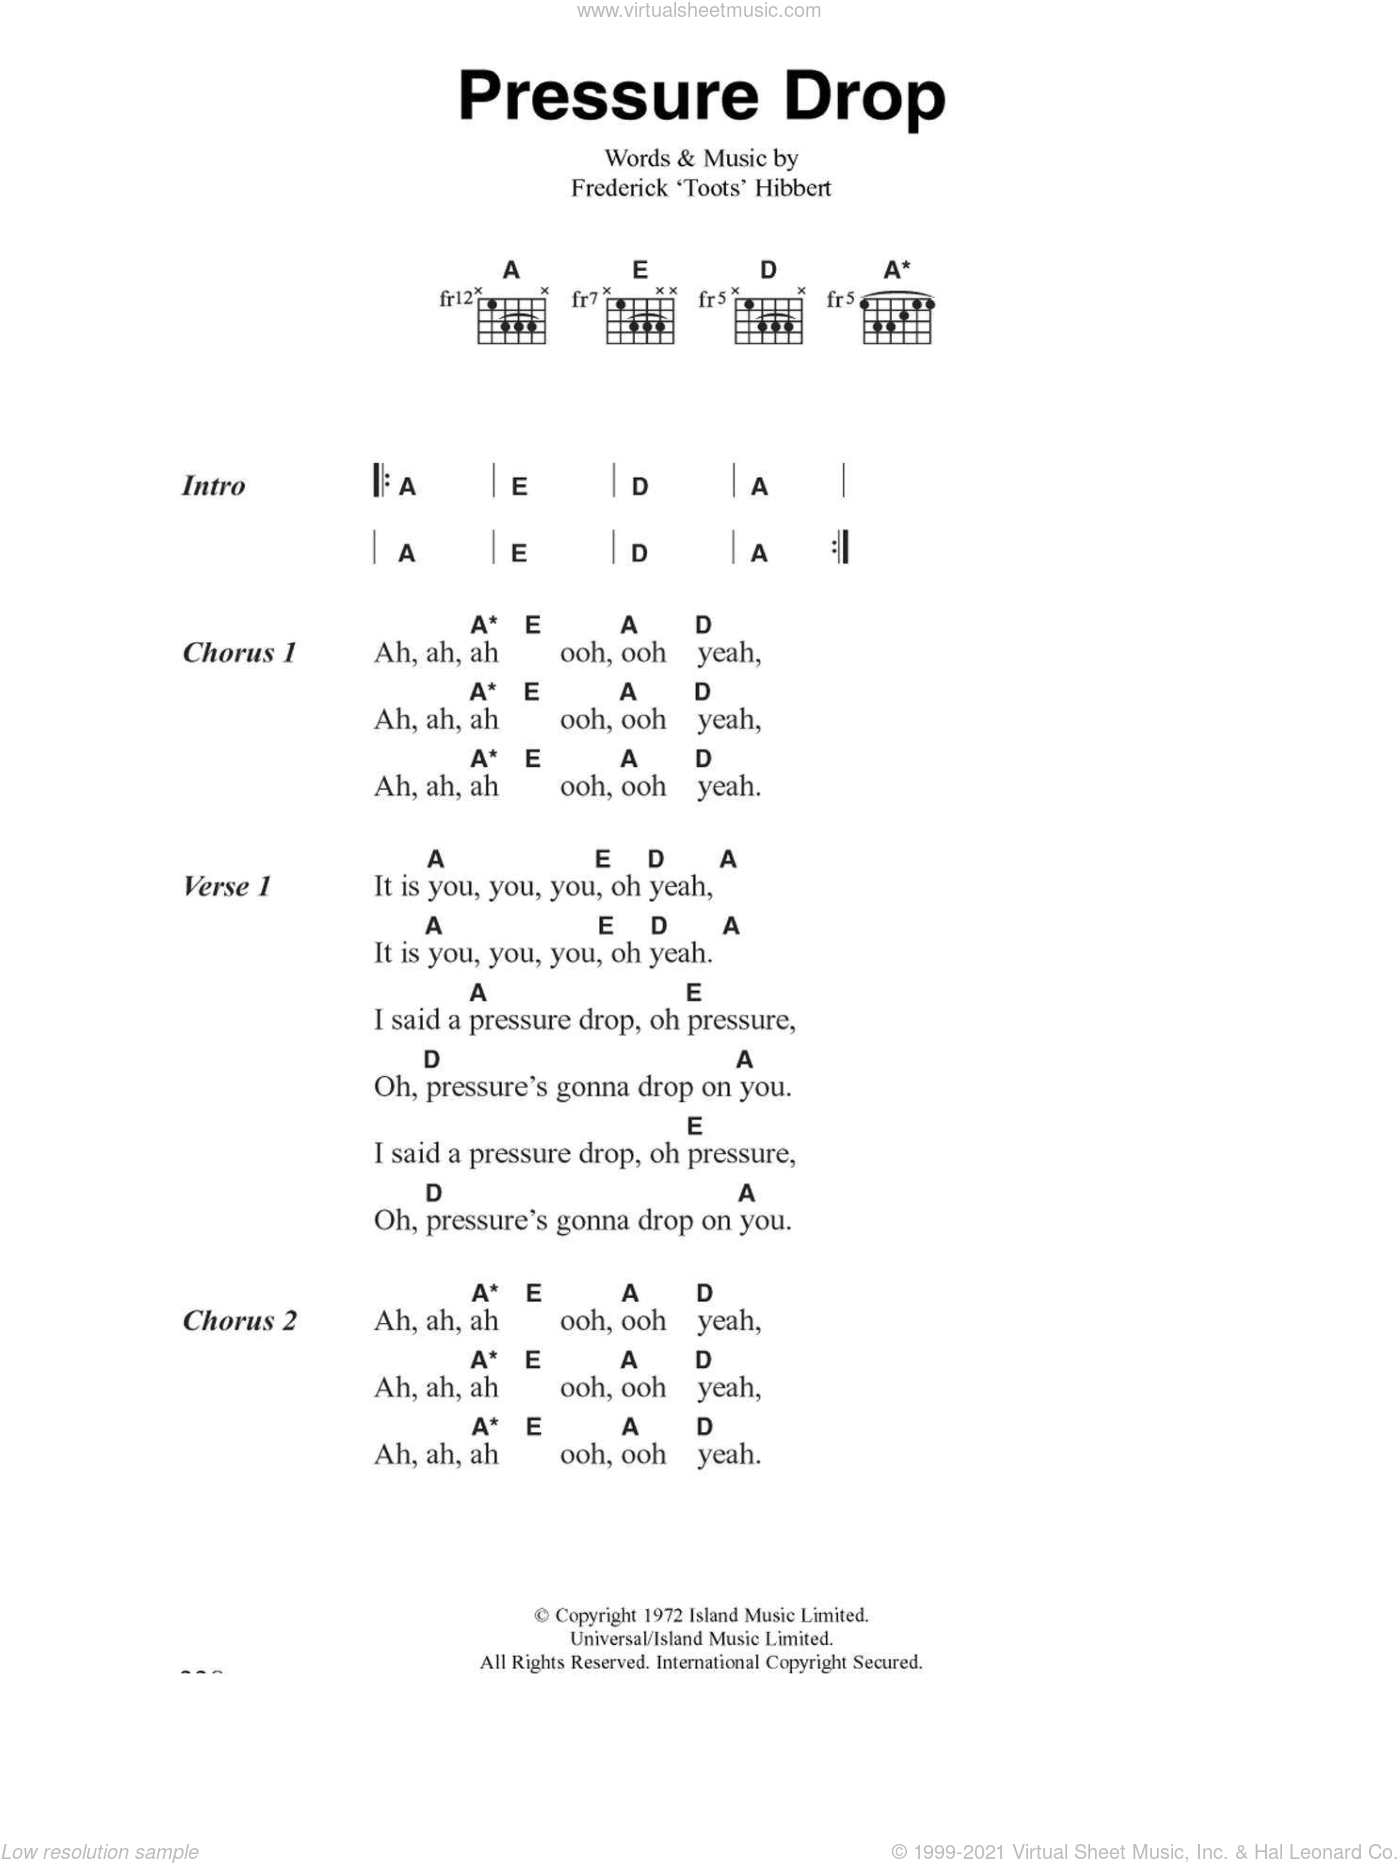 Pressure Drop sheet music for guitar (chords) by The Clash. Score Image Preview.